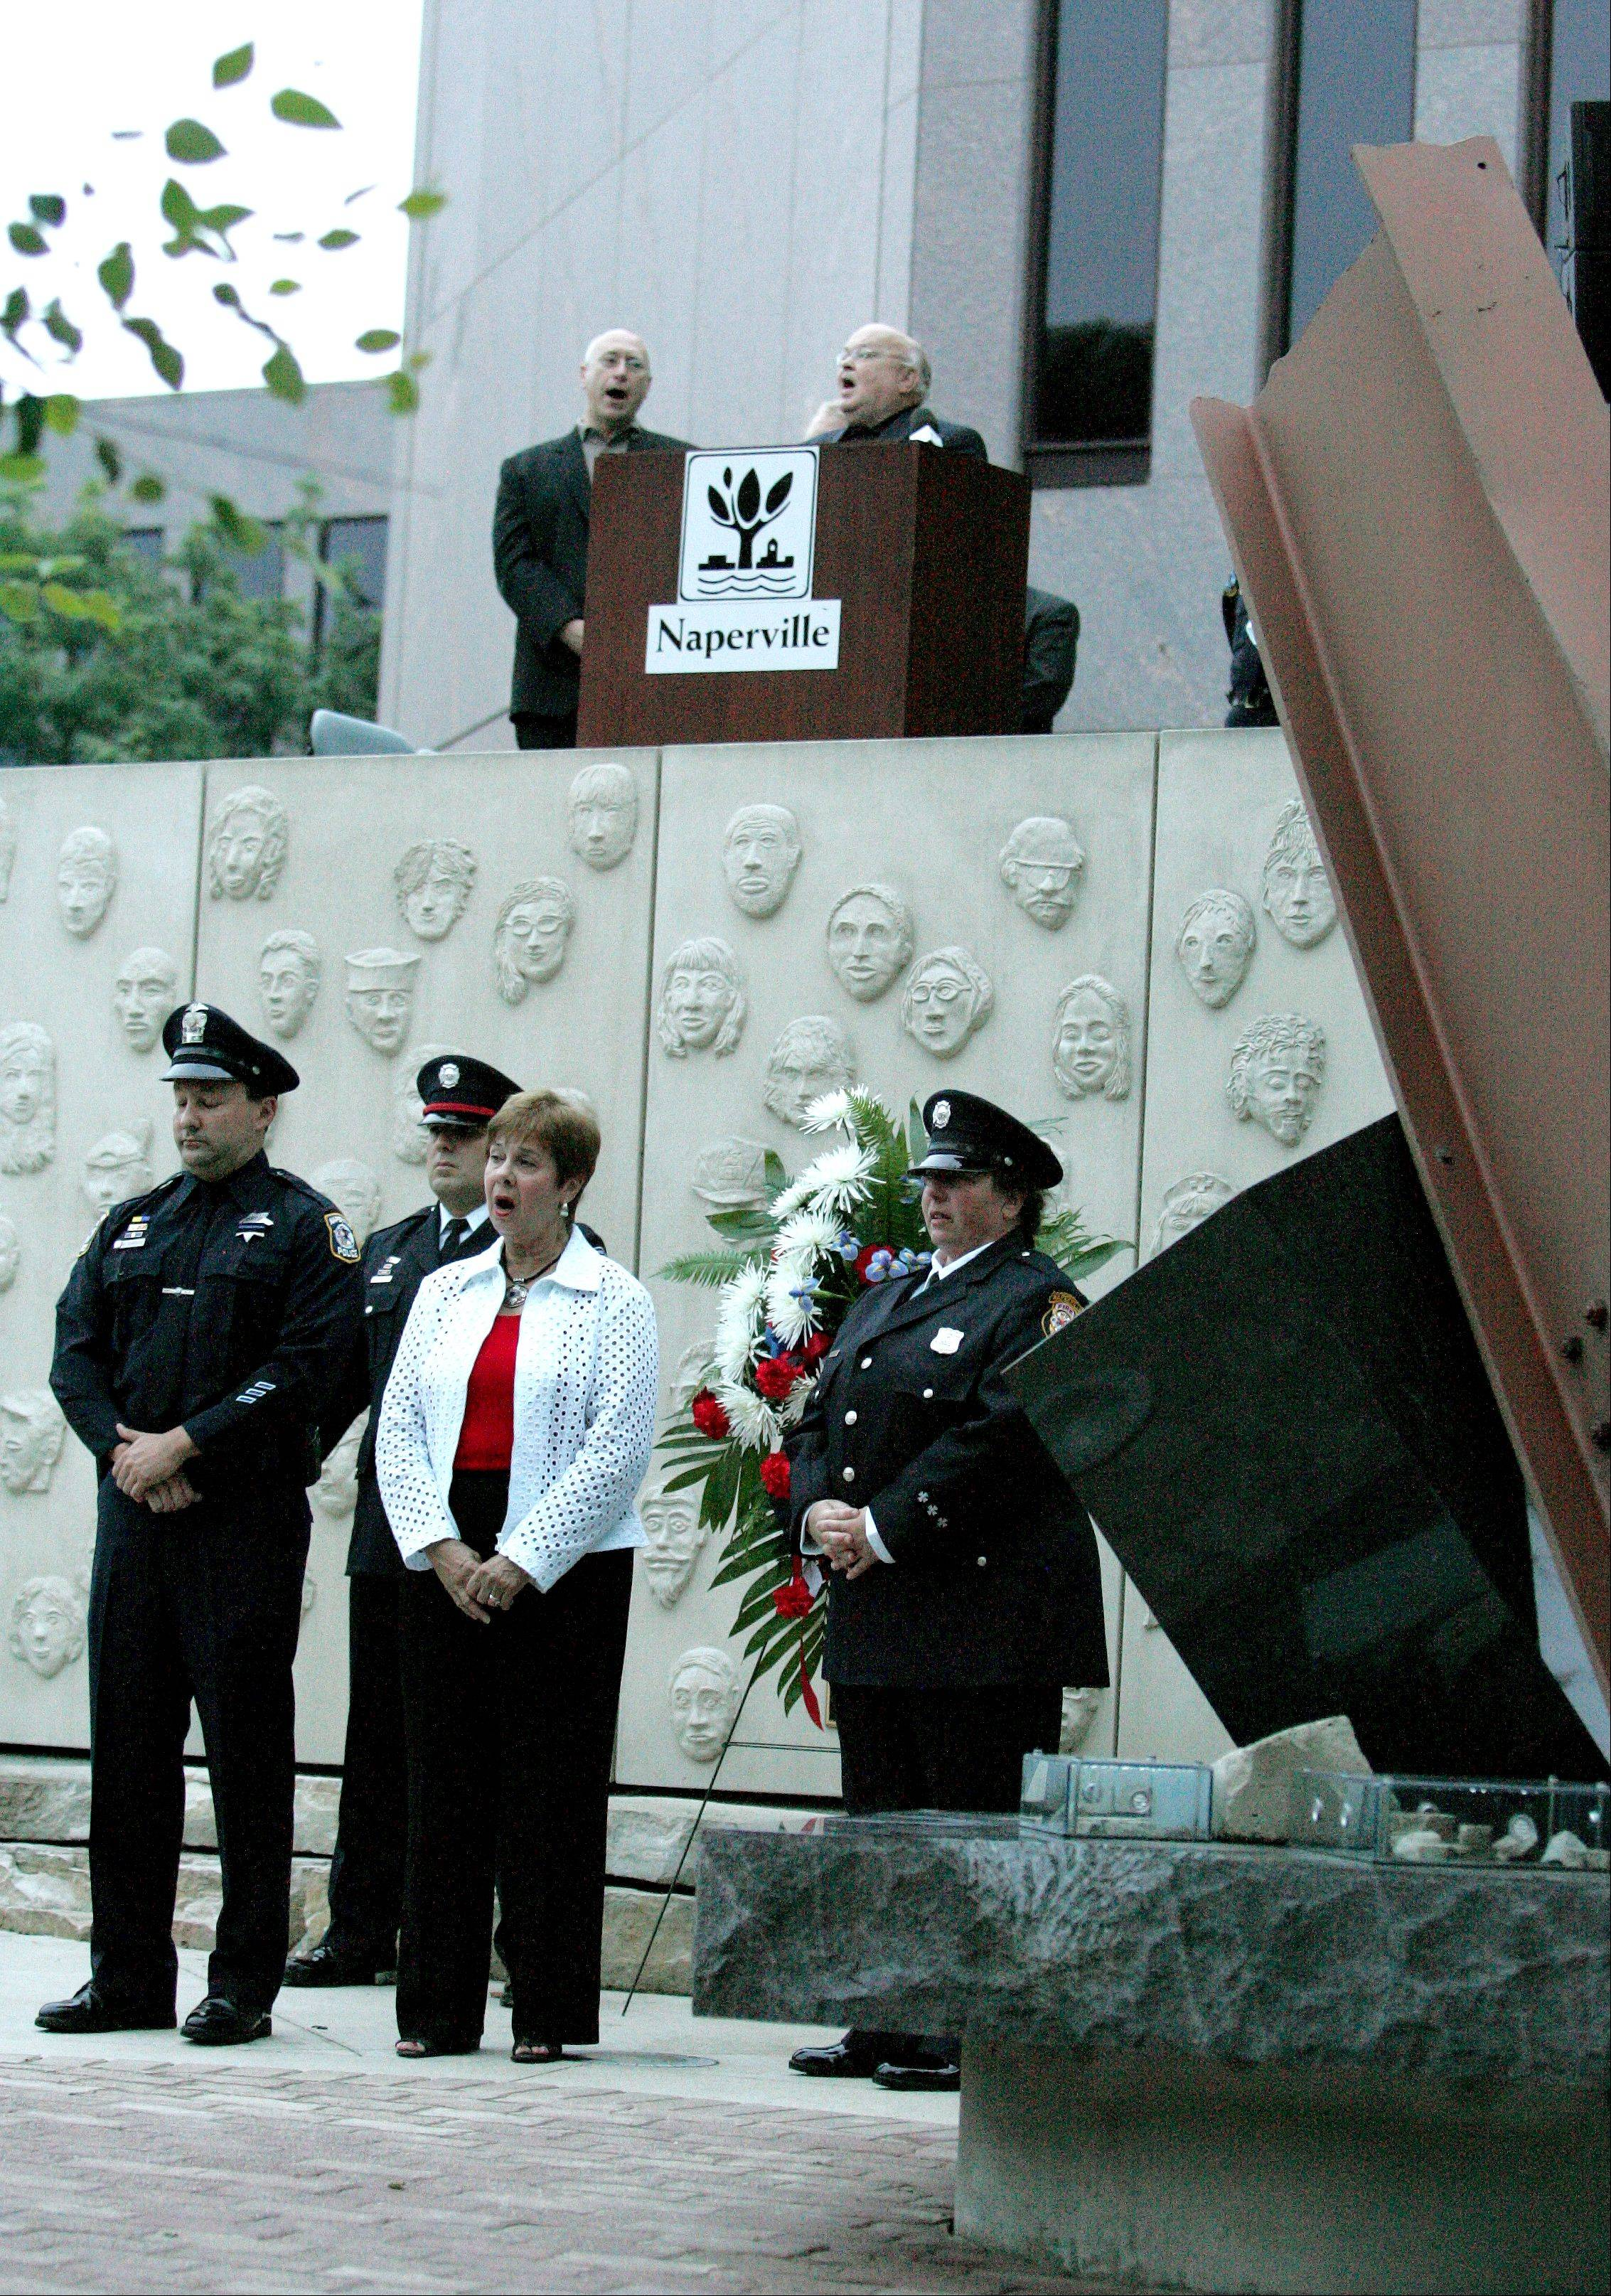 The Sept. 11/Cmdr. Dan Shanower Memorial includes steel from the World Trade Center and other symbols of the sites where terrorists struck. The city's ceremony begins at 5:30 p.m. Tuesday, Sept. 11, at the memorial.